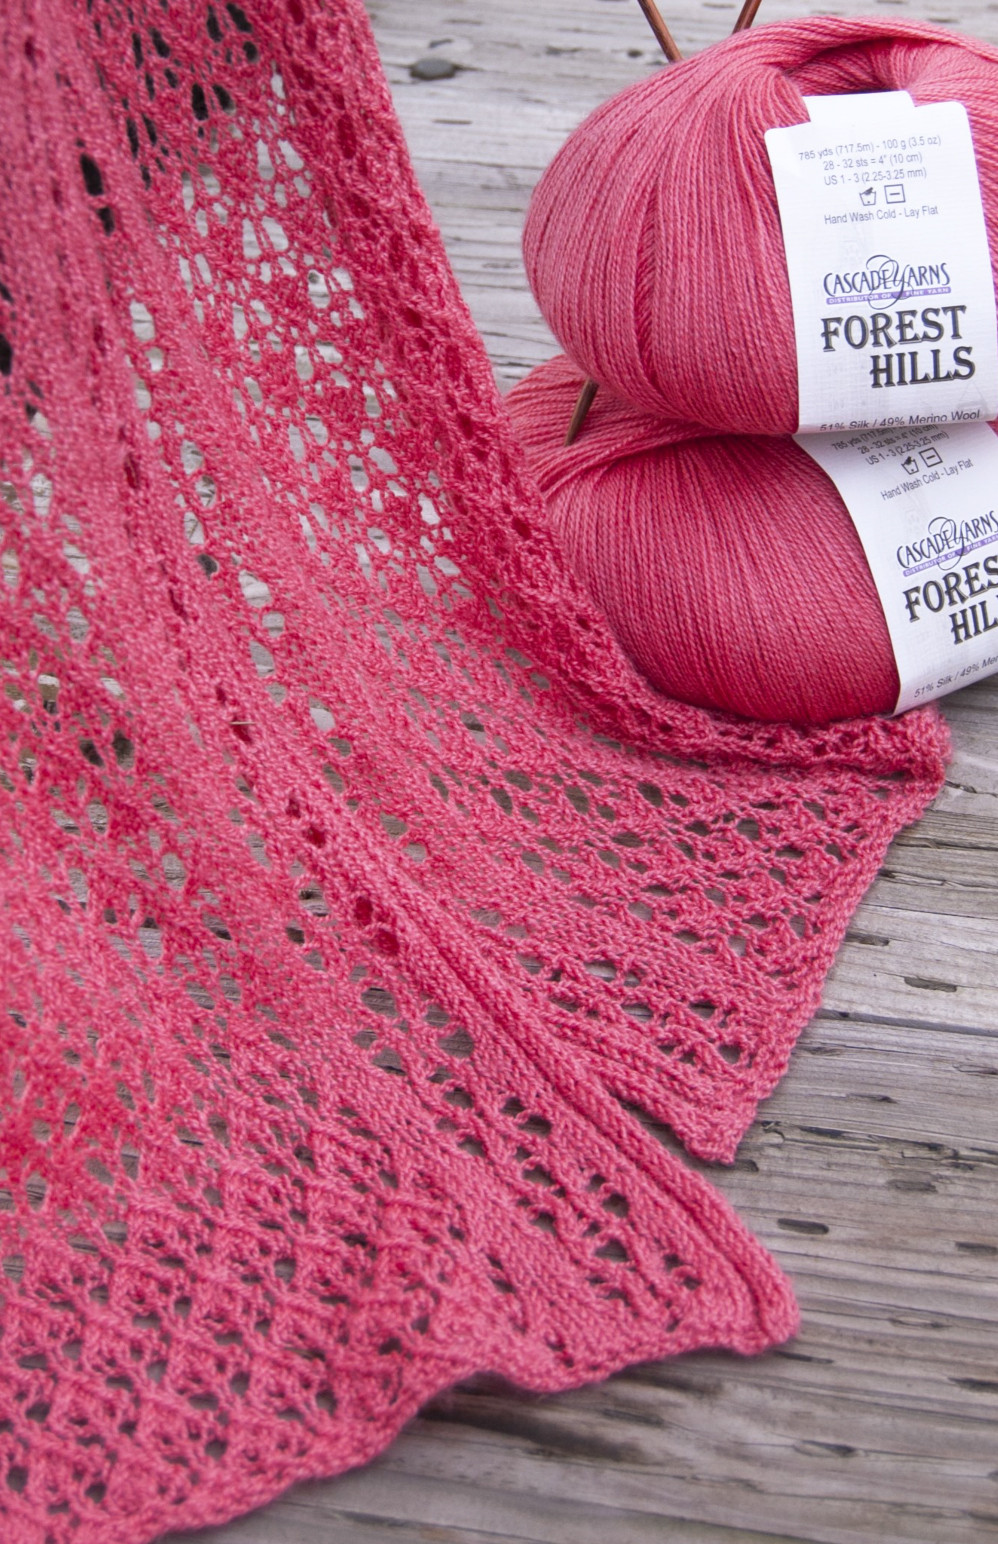 Elegant Lacy Scarf Free Crochet Pattern Lacy Scarf Knitting Pattern Of Superb 46 Models Lacy Scarf Knitting Pattern